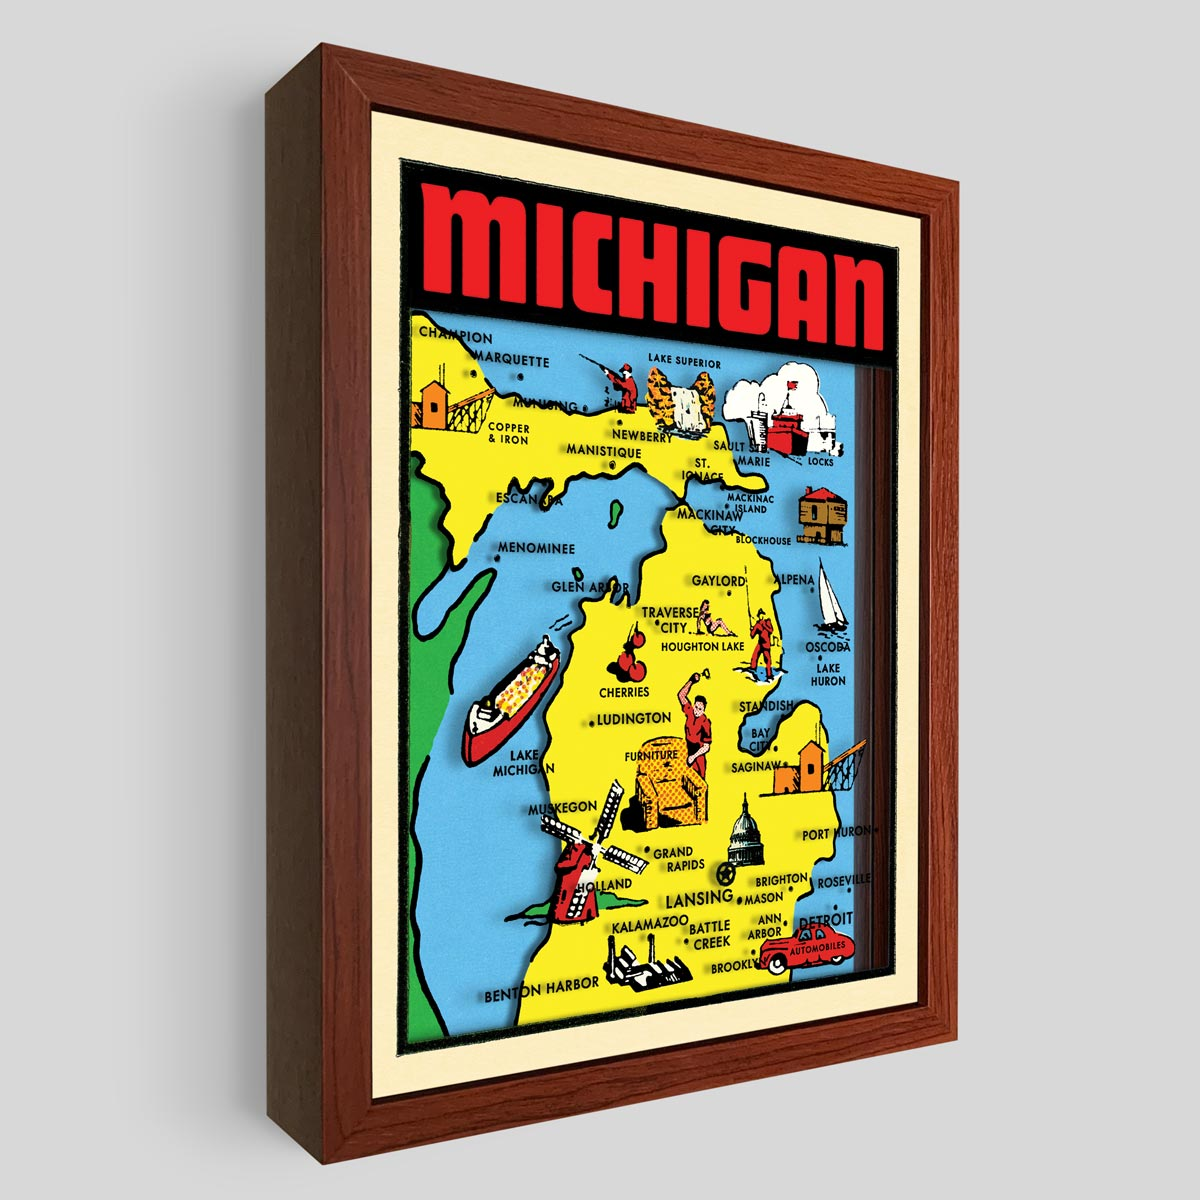 Michigan Shadowbox Art